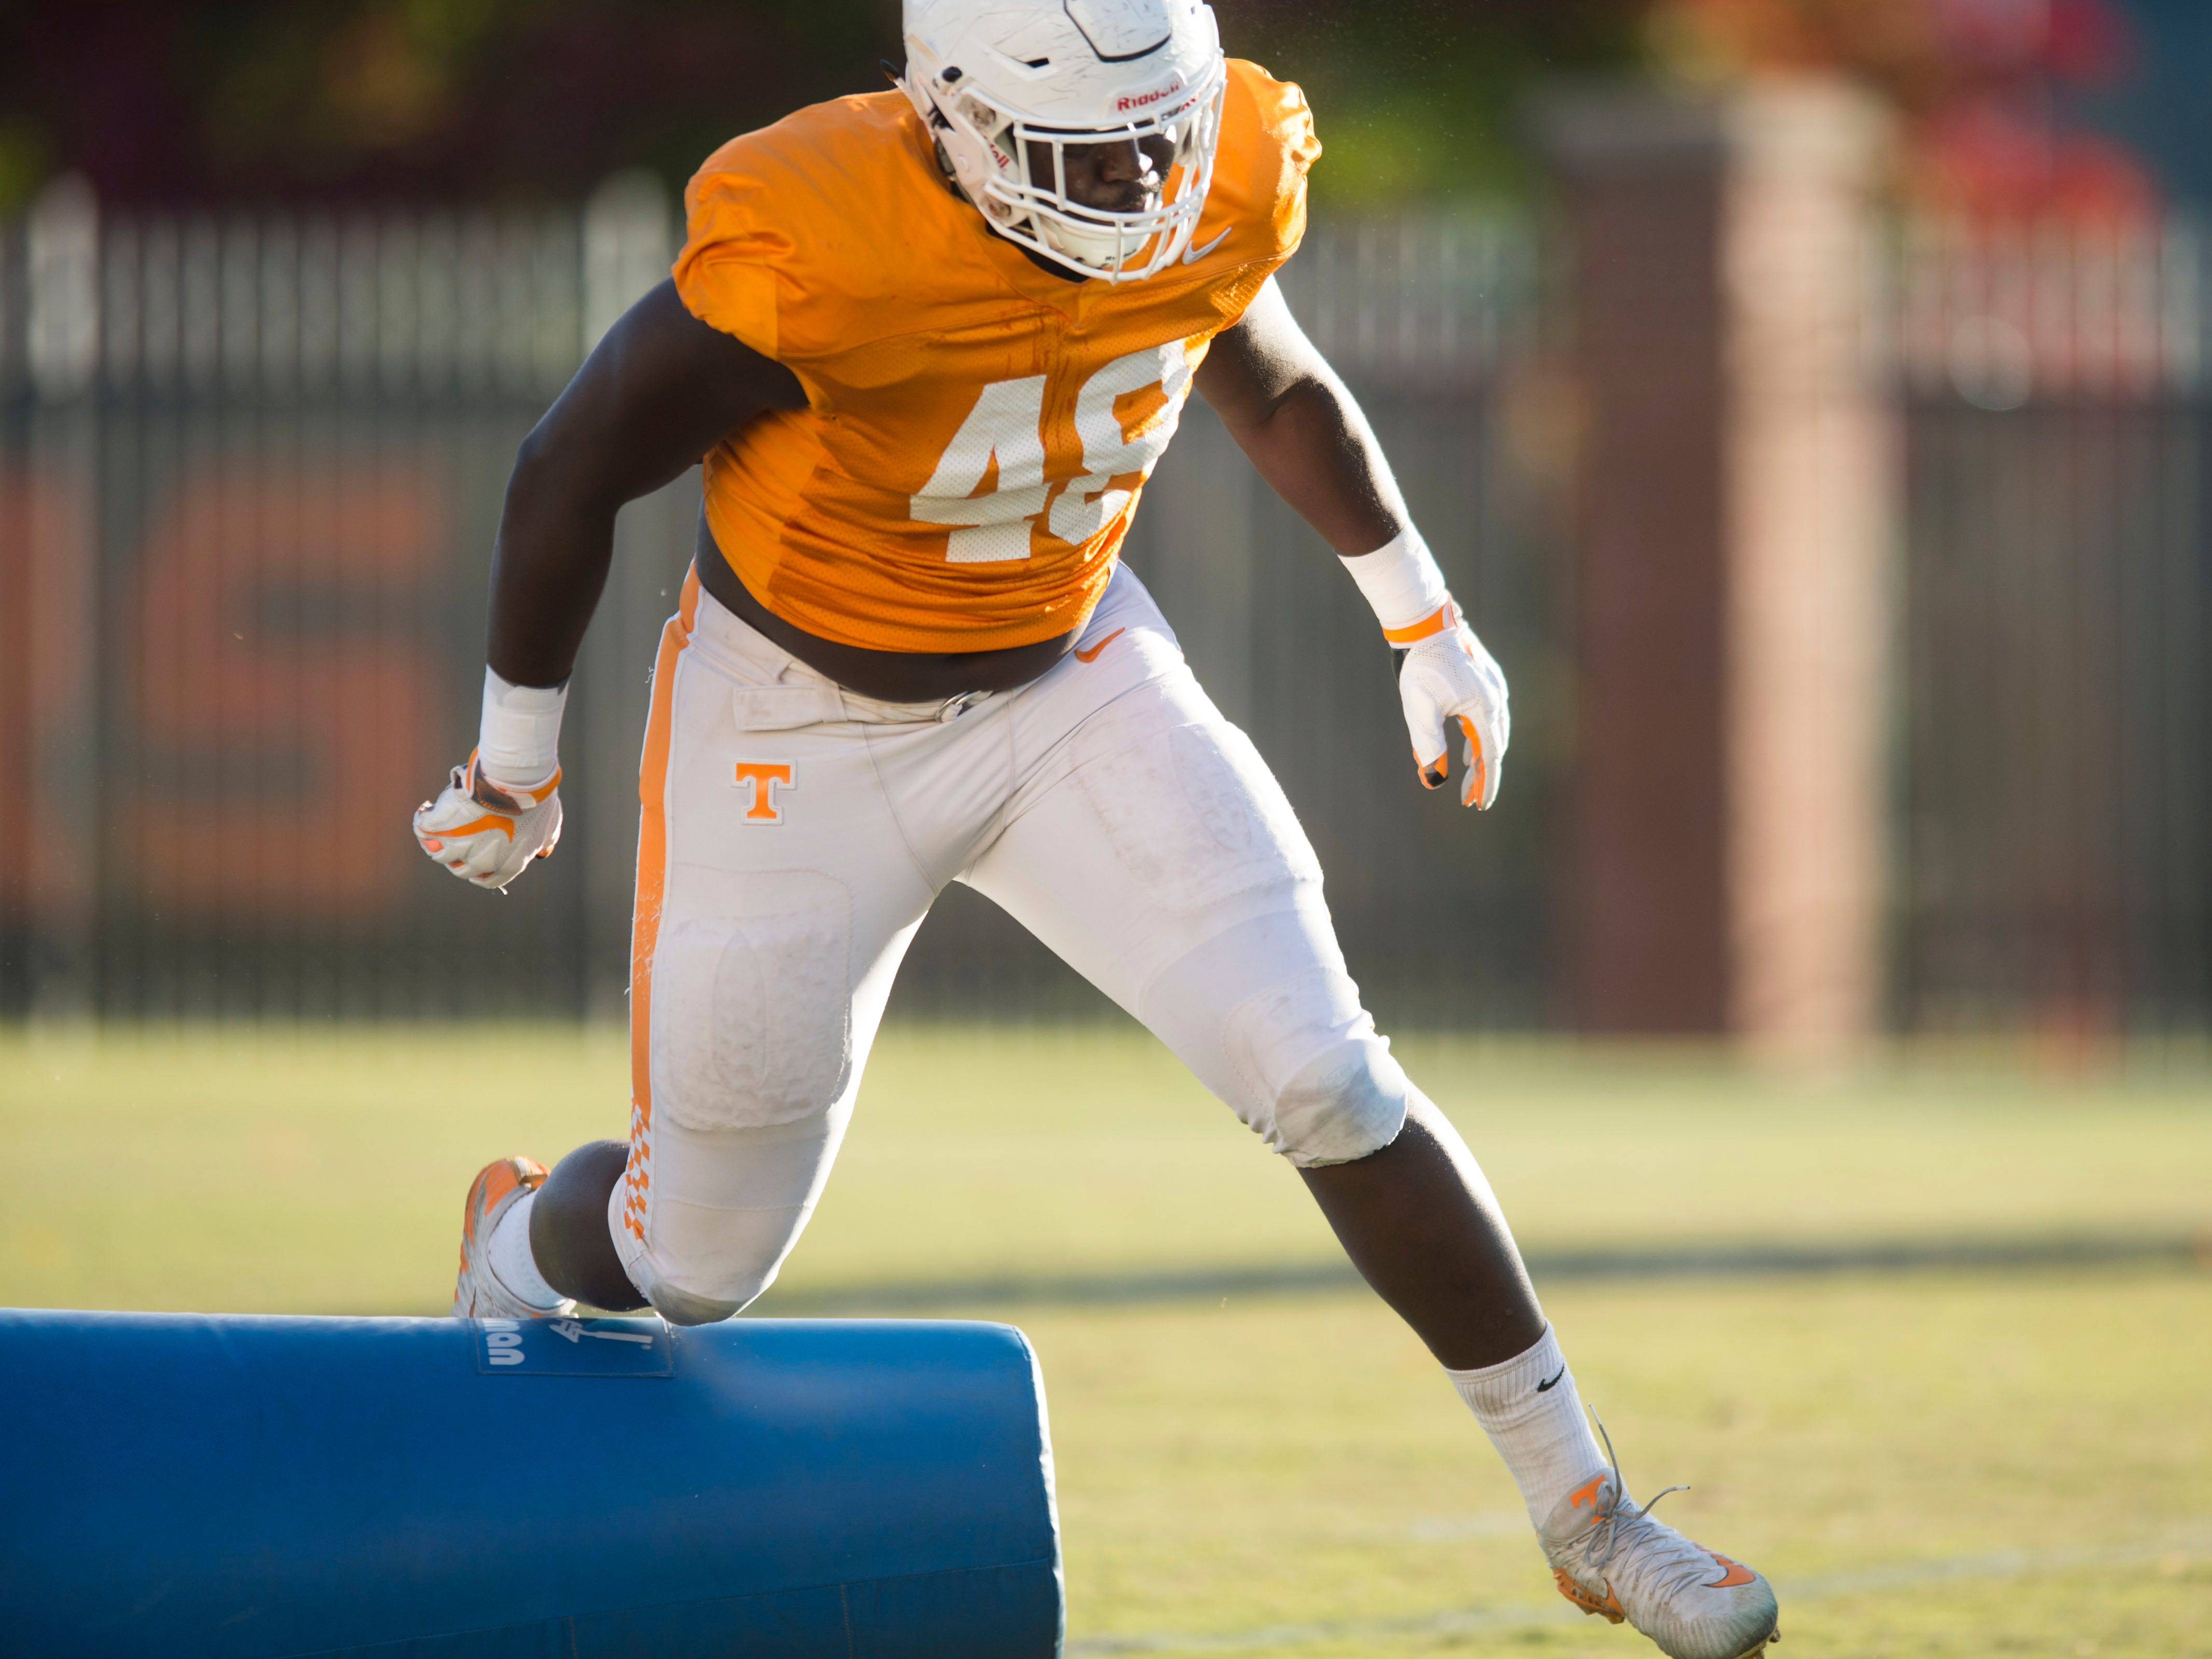 Tennessee tight end/running back Ja'Quain Blakely (48) during Tennessee football practice on Tuesday, November 6, 2018.